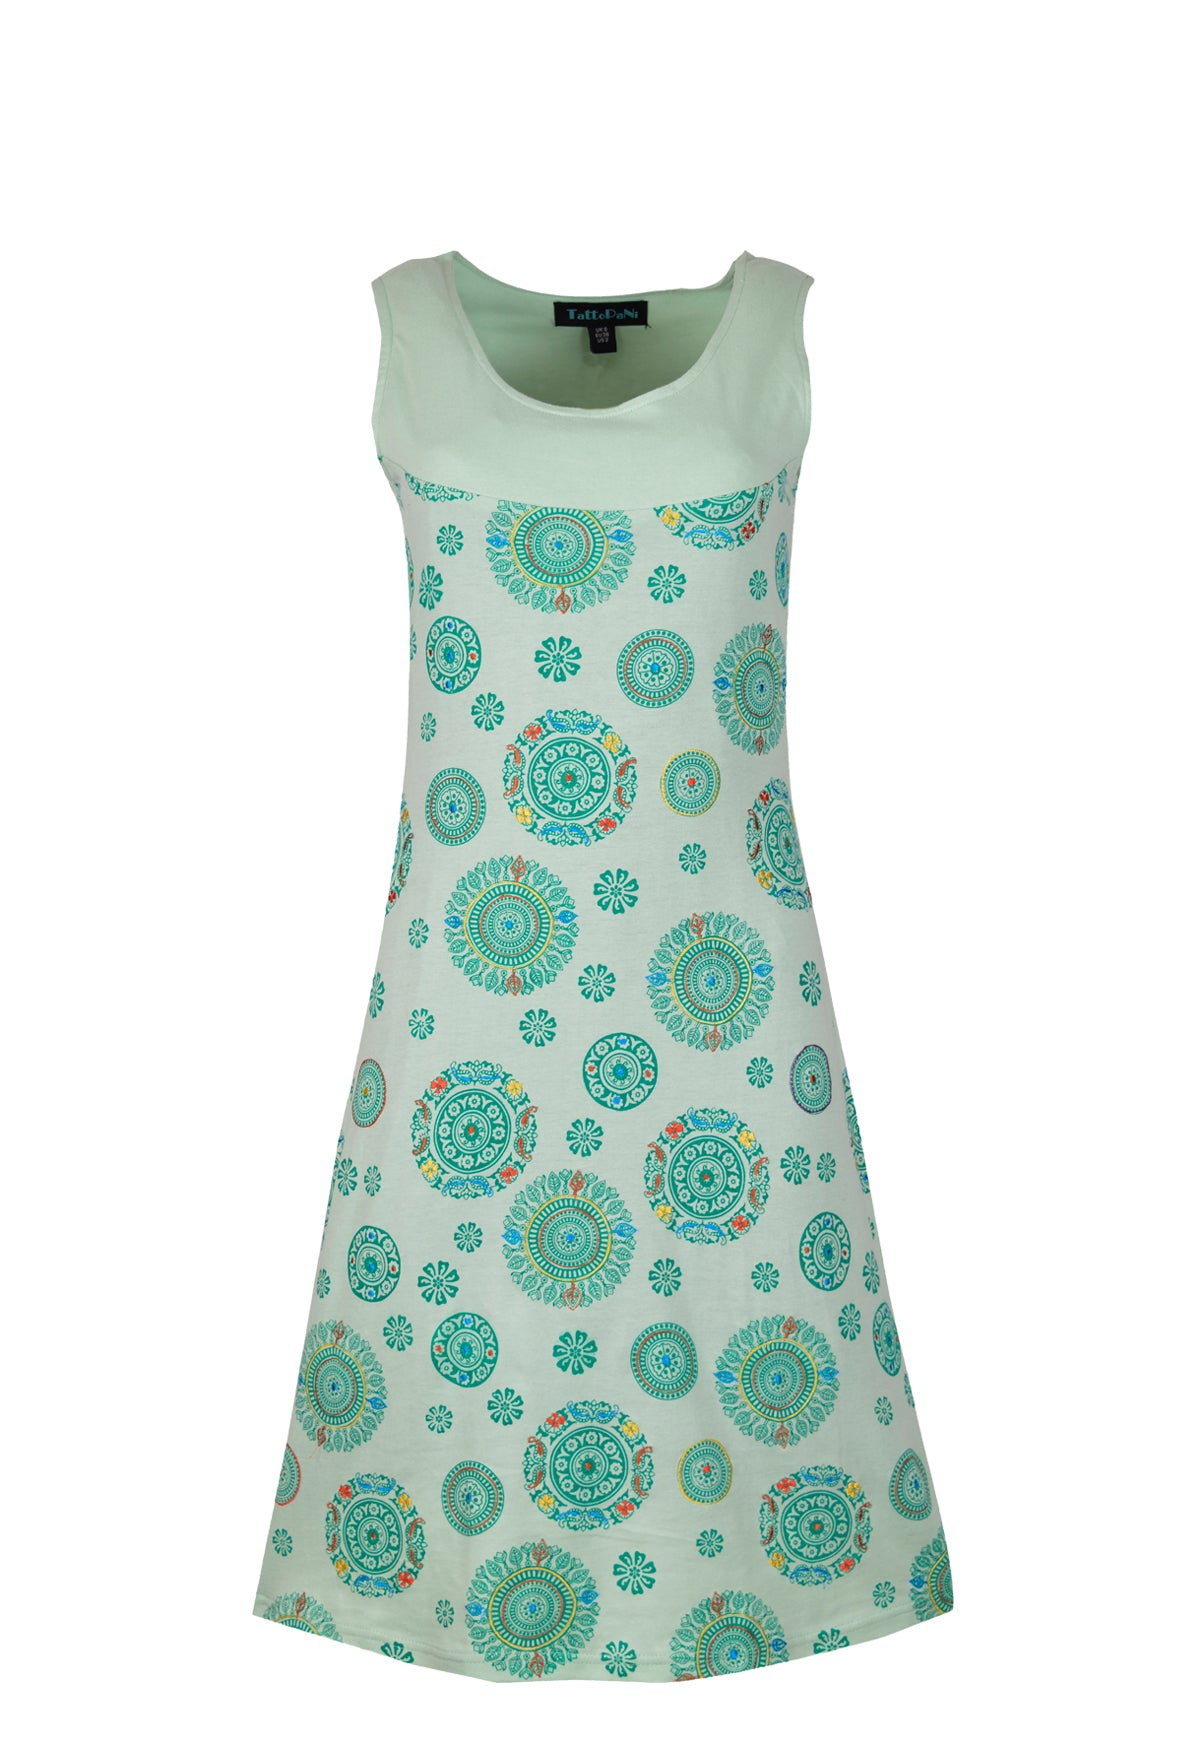 Ladies sleeveless dress with chakra print. - Craze Trade Limited